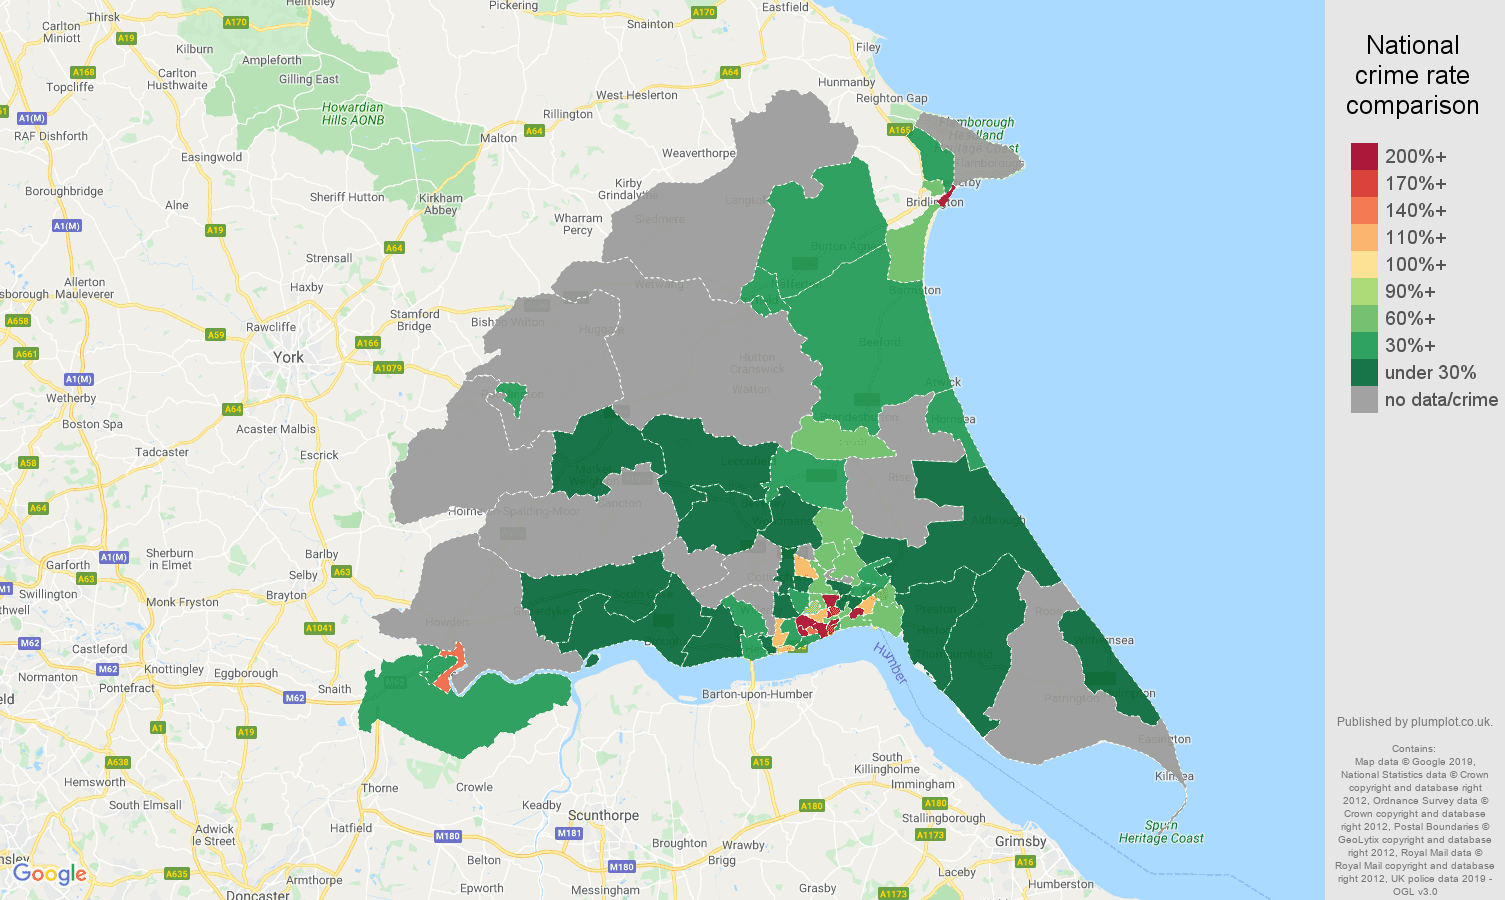 East Riding of Yorkshire possession of weapons crime rate comparison map